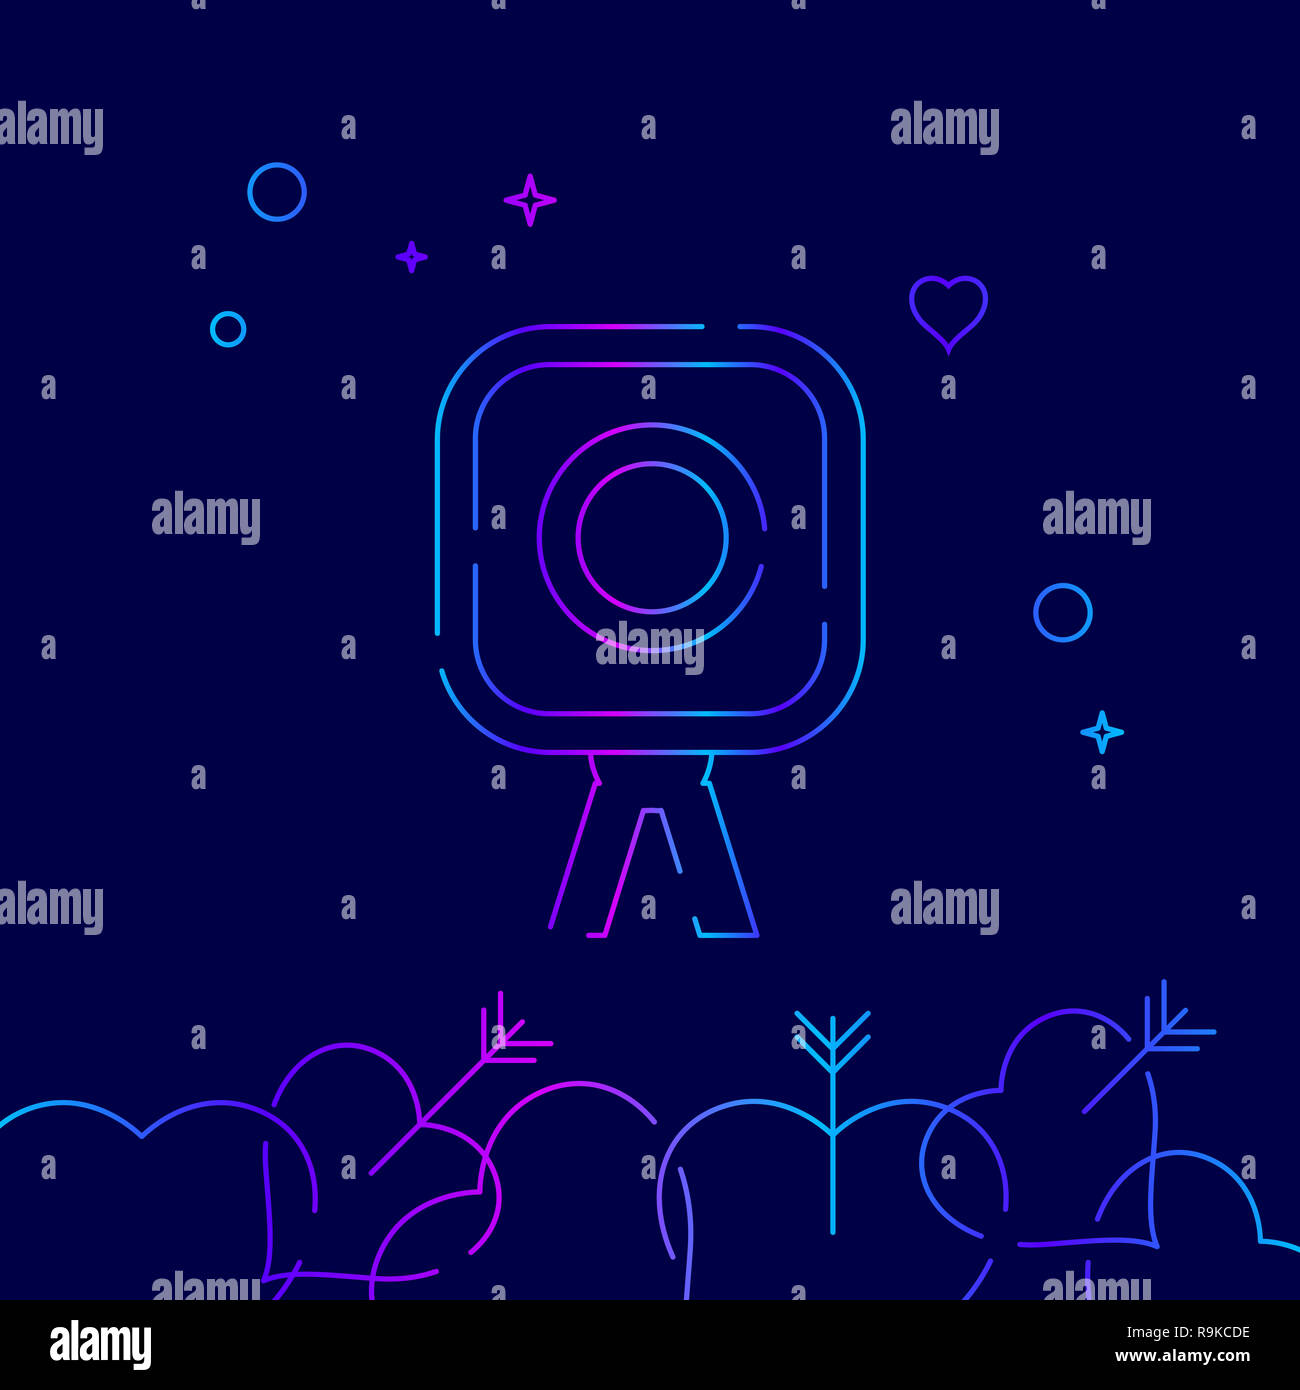 Photo Camera, Photographer Line Icon. Wedding Photography Gradient Symbol, Pictogram, Sign. Dark Blue Background. Light Abstract Geometric Background. - Stock Image